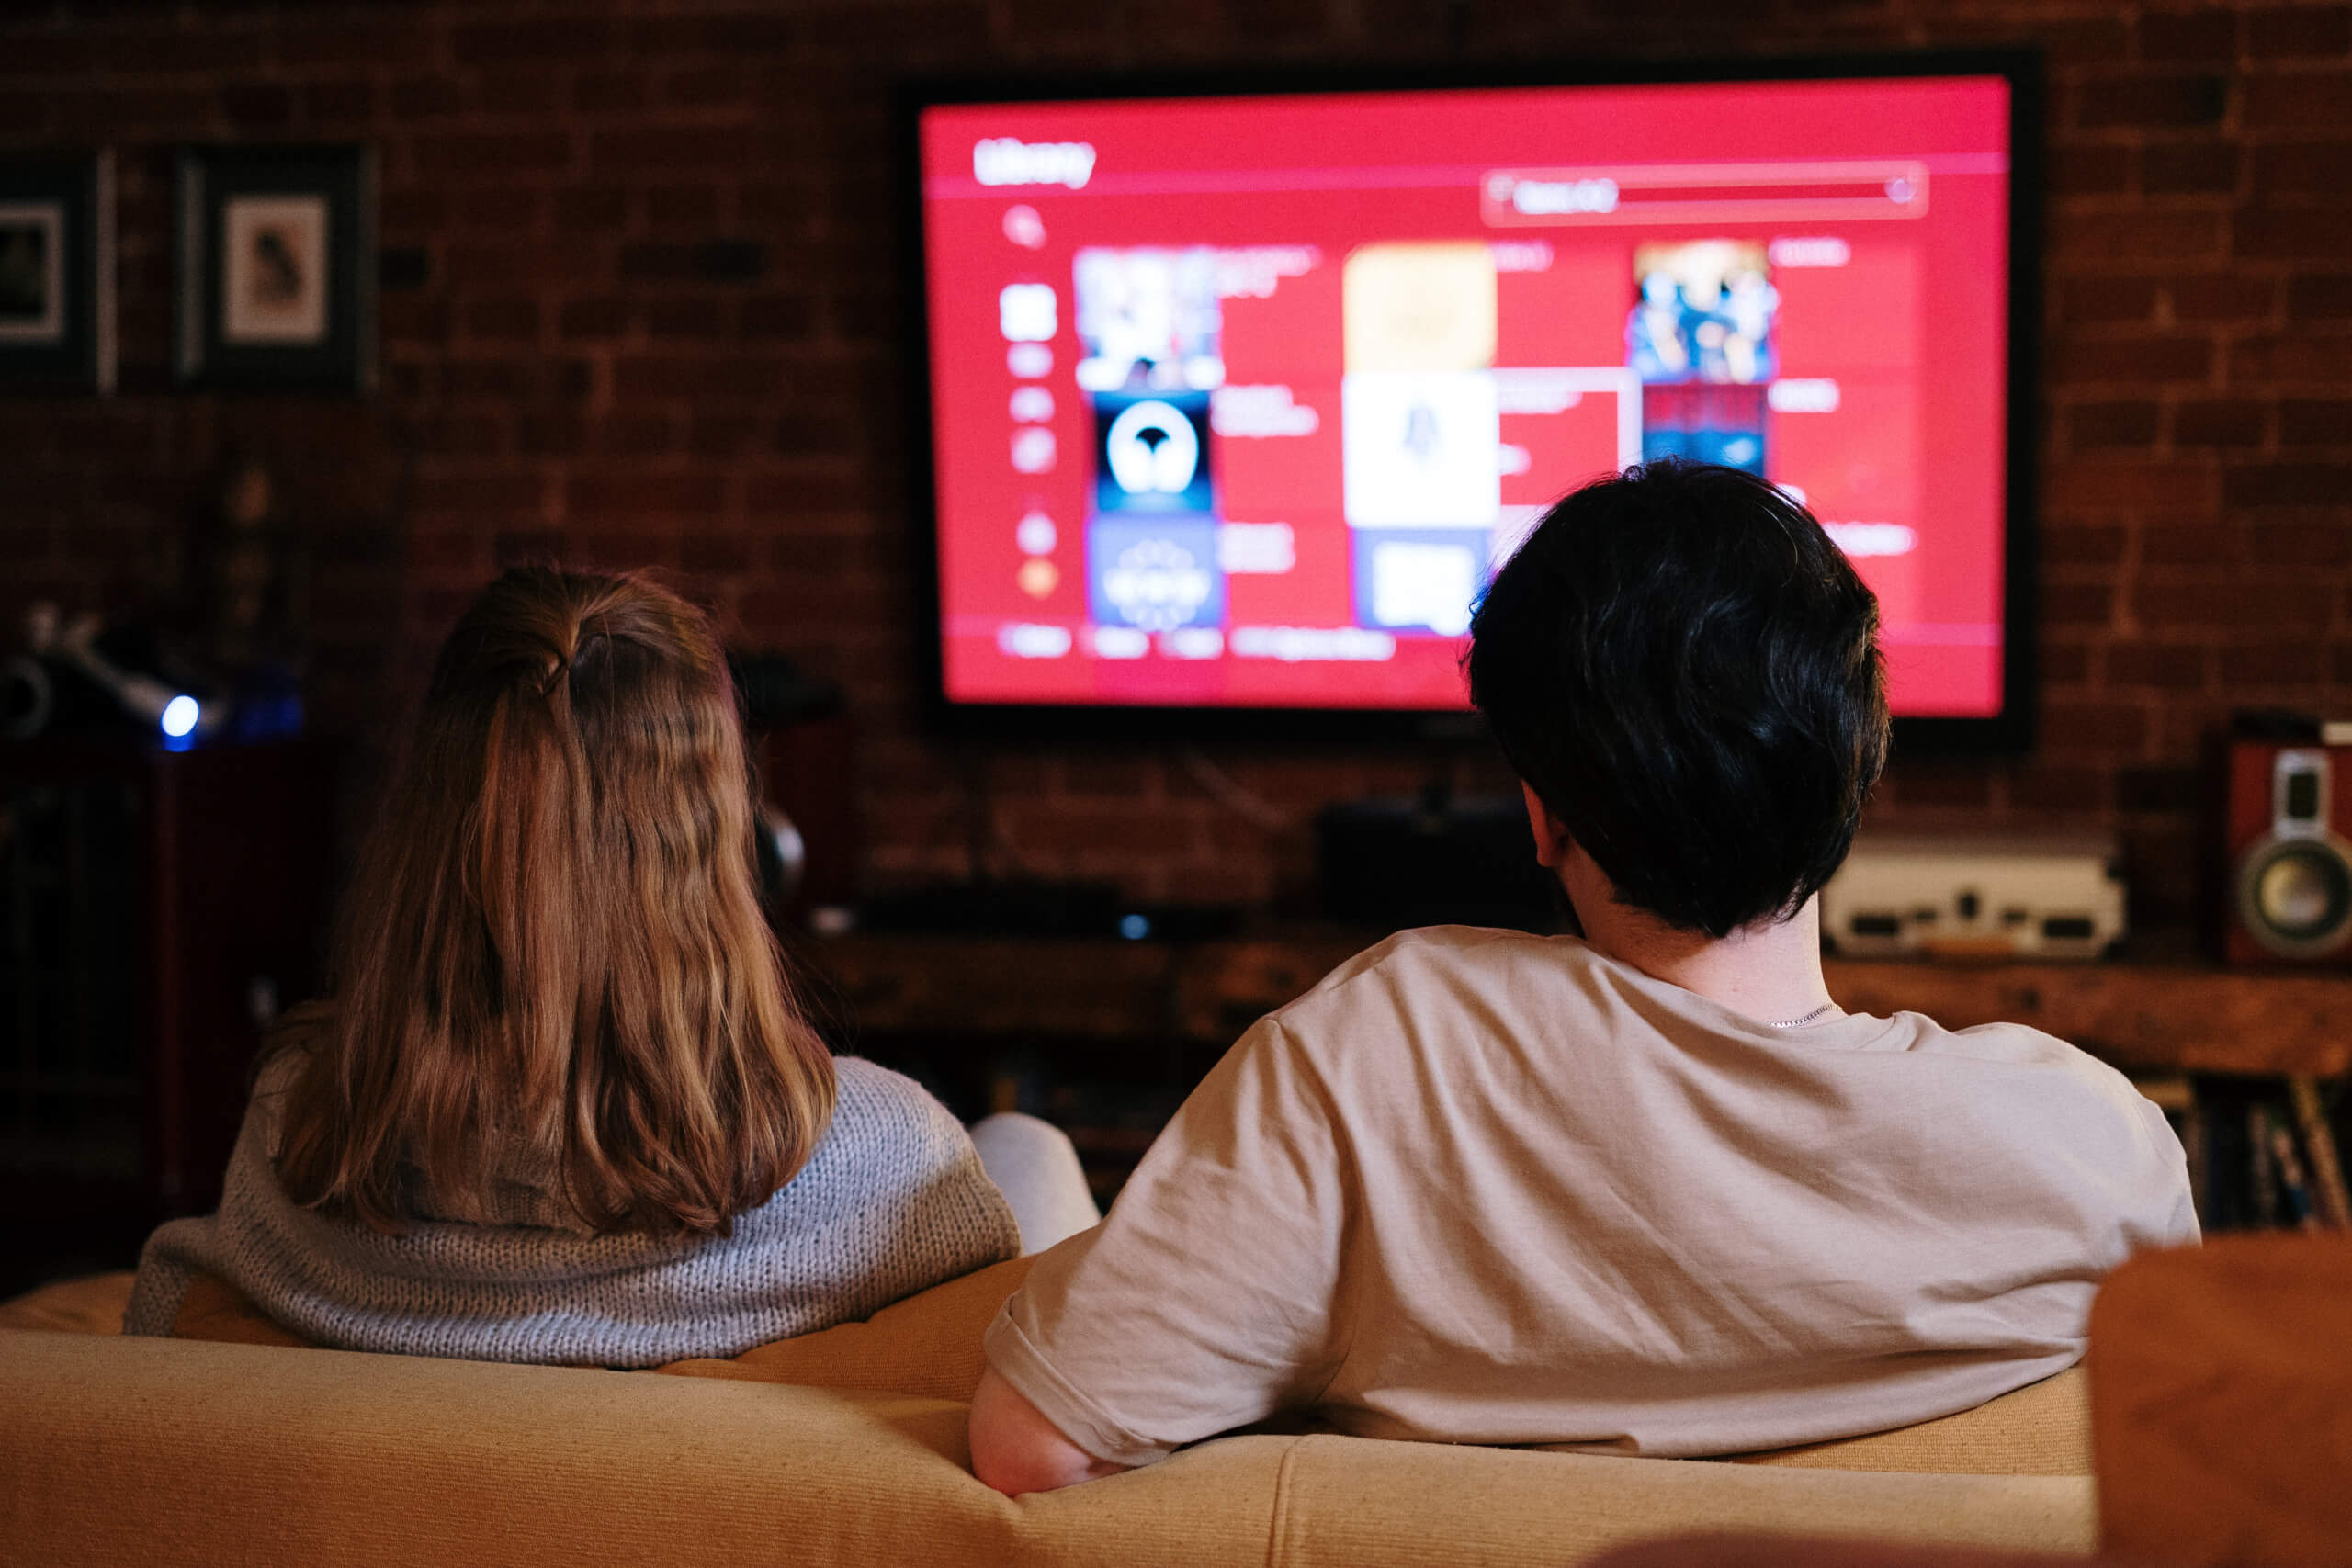 rear view of couple watching TV with screen blurred